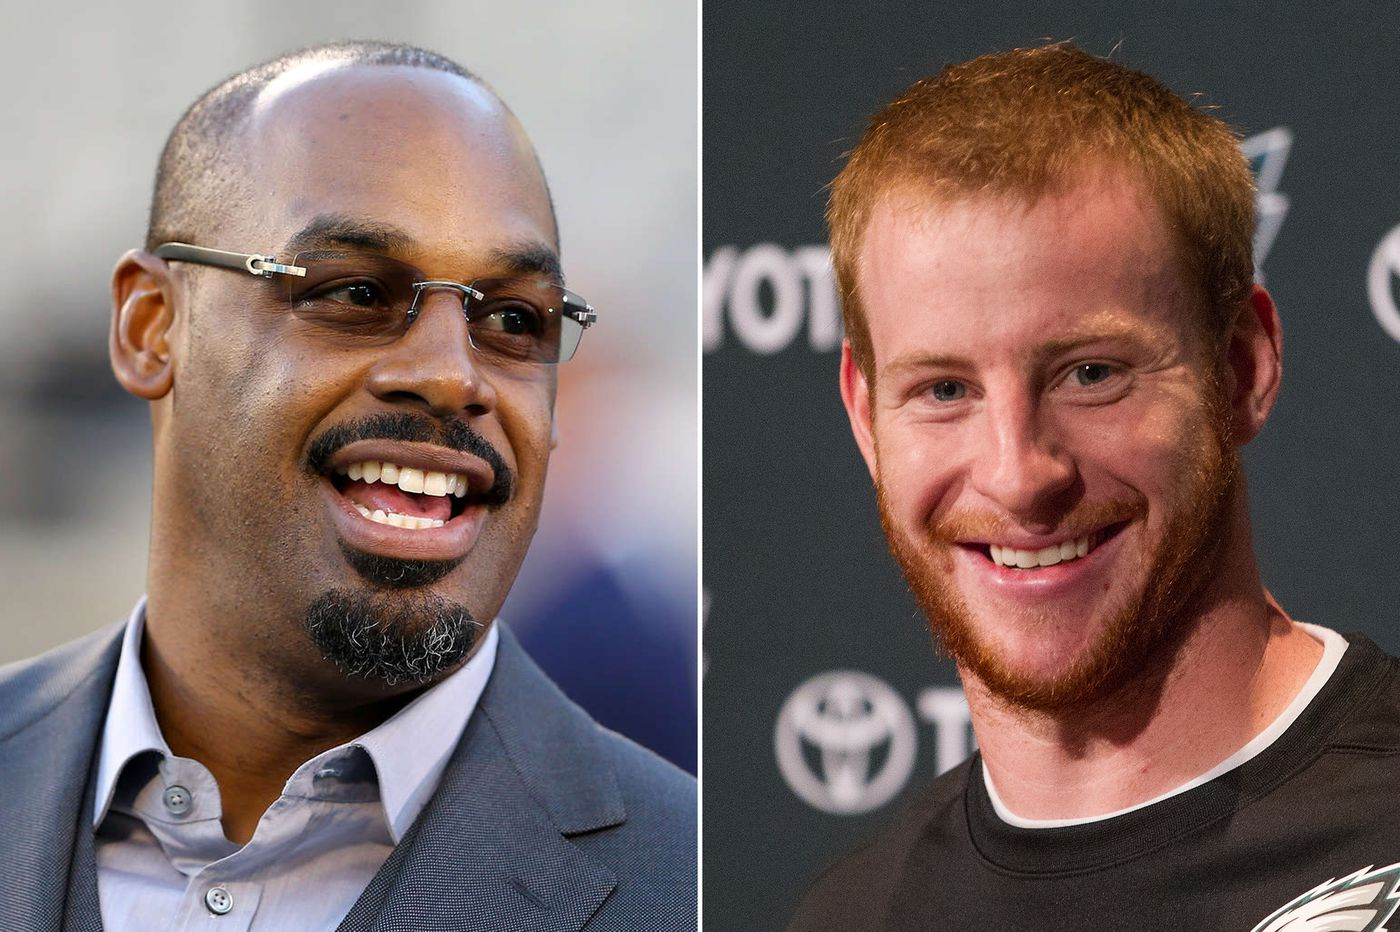 Donovan McNabb said it the wrong way, but he wasn't wrong about the Eagles   Marcus Hayes